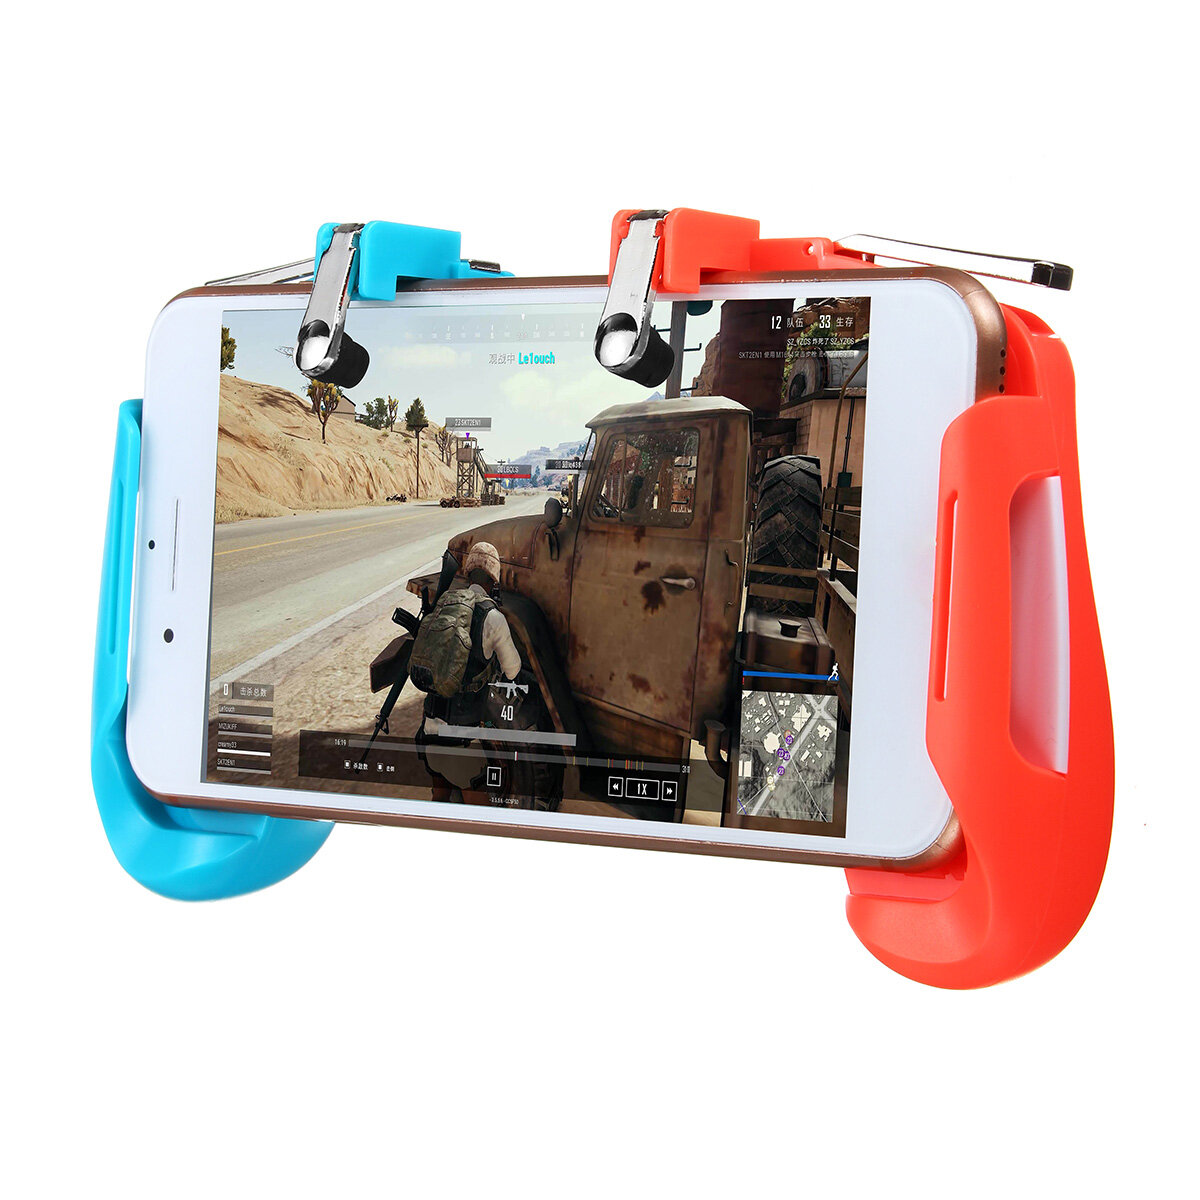 2 in1 Gamepad Game Controller Handle L1R1 Shooter Trigger Fires Button For PUBG Mobile Game For Android IOS Smartphone